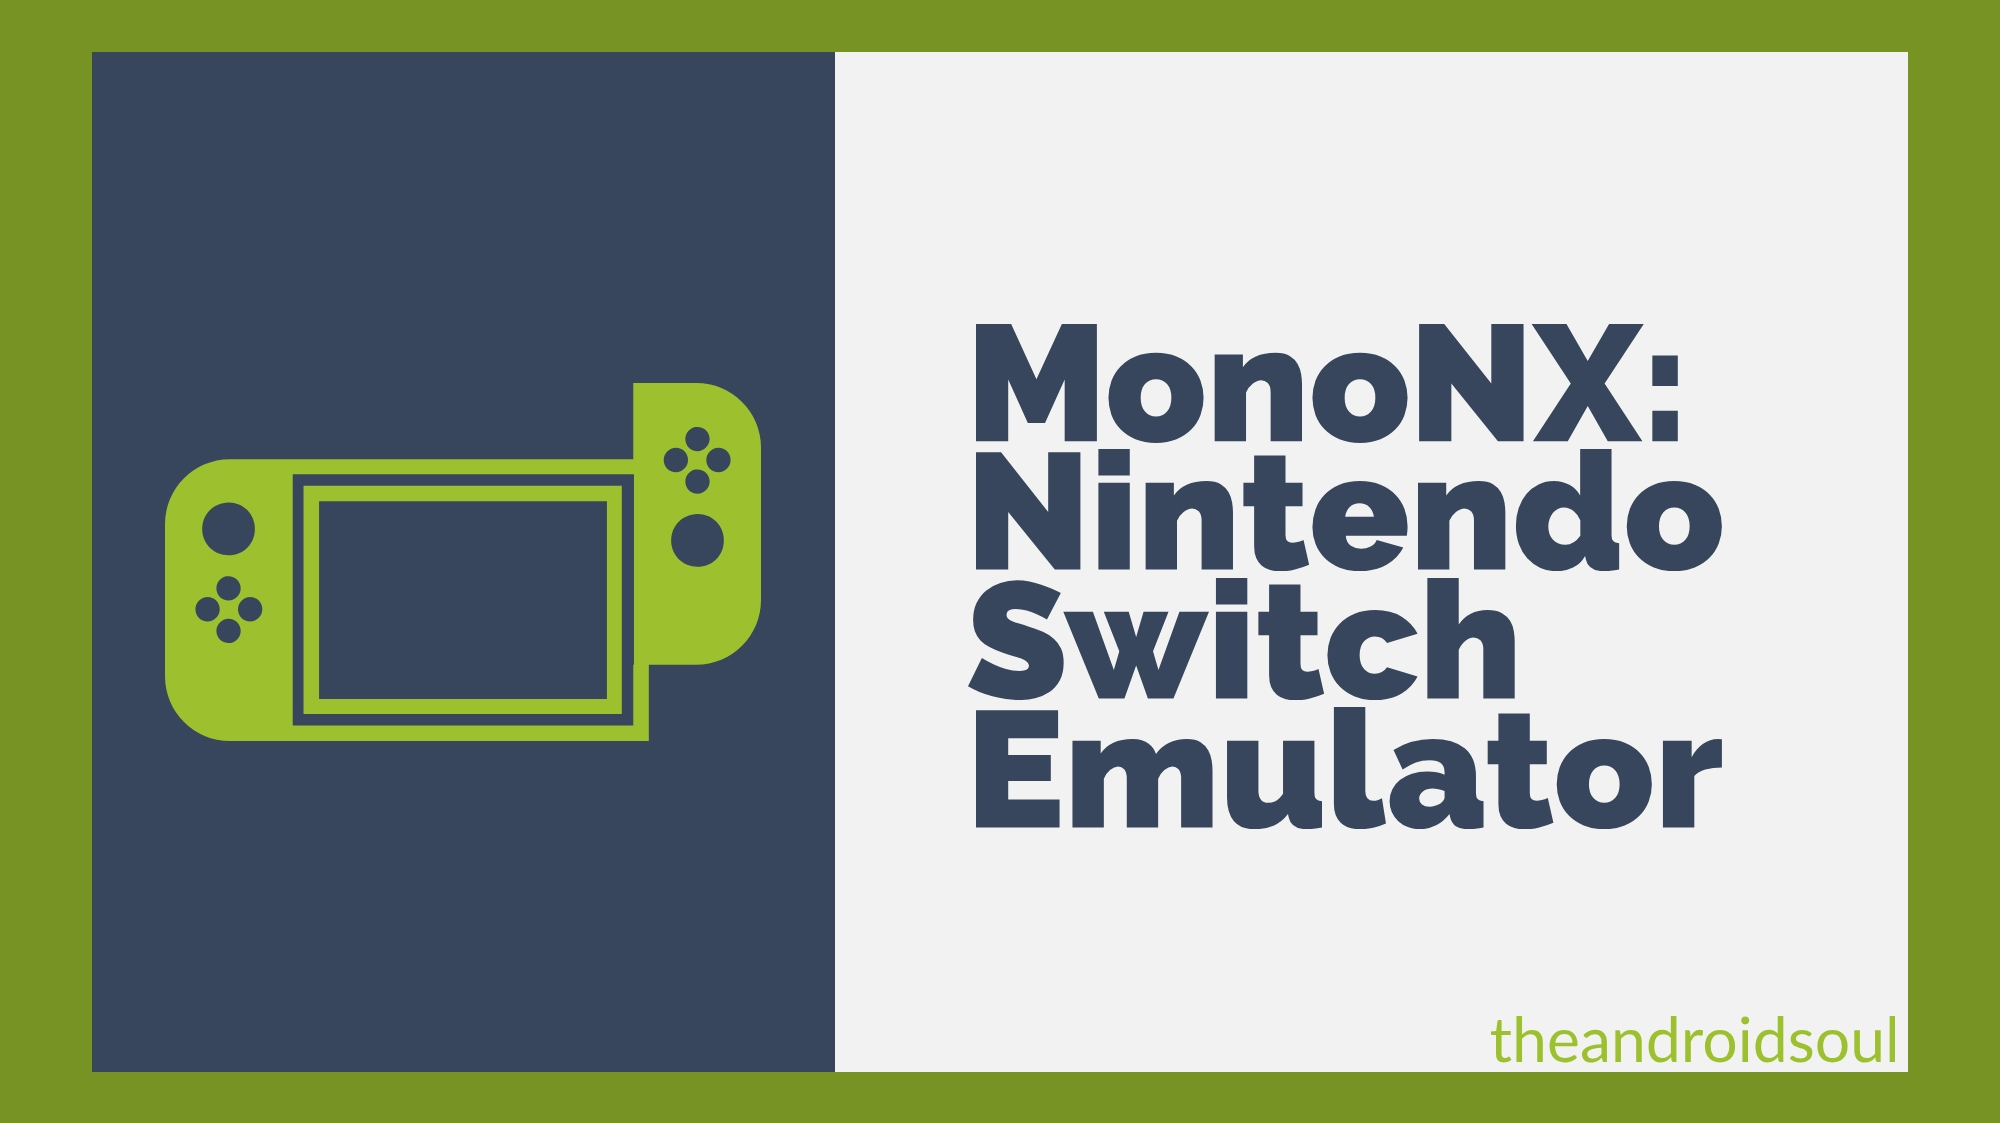 The experimental MonoNX emulator might let you play Nintendo Switch titles on your Android device soon